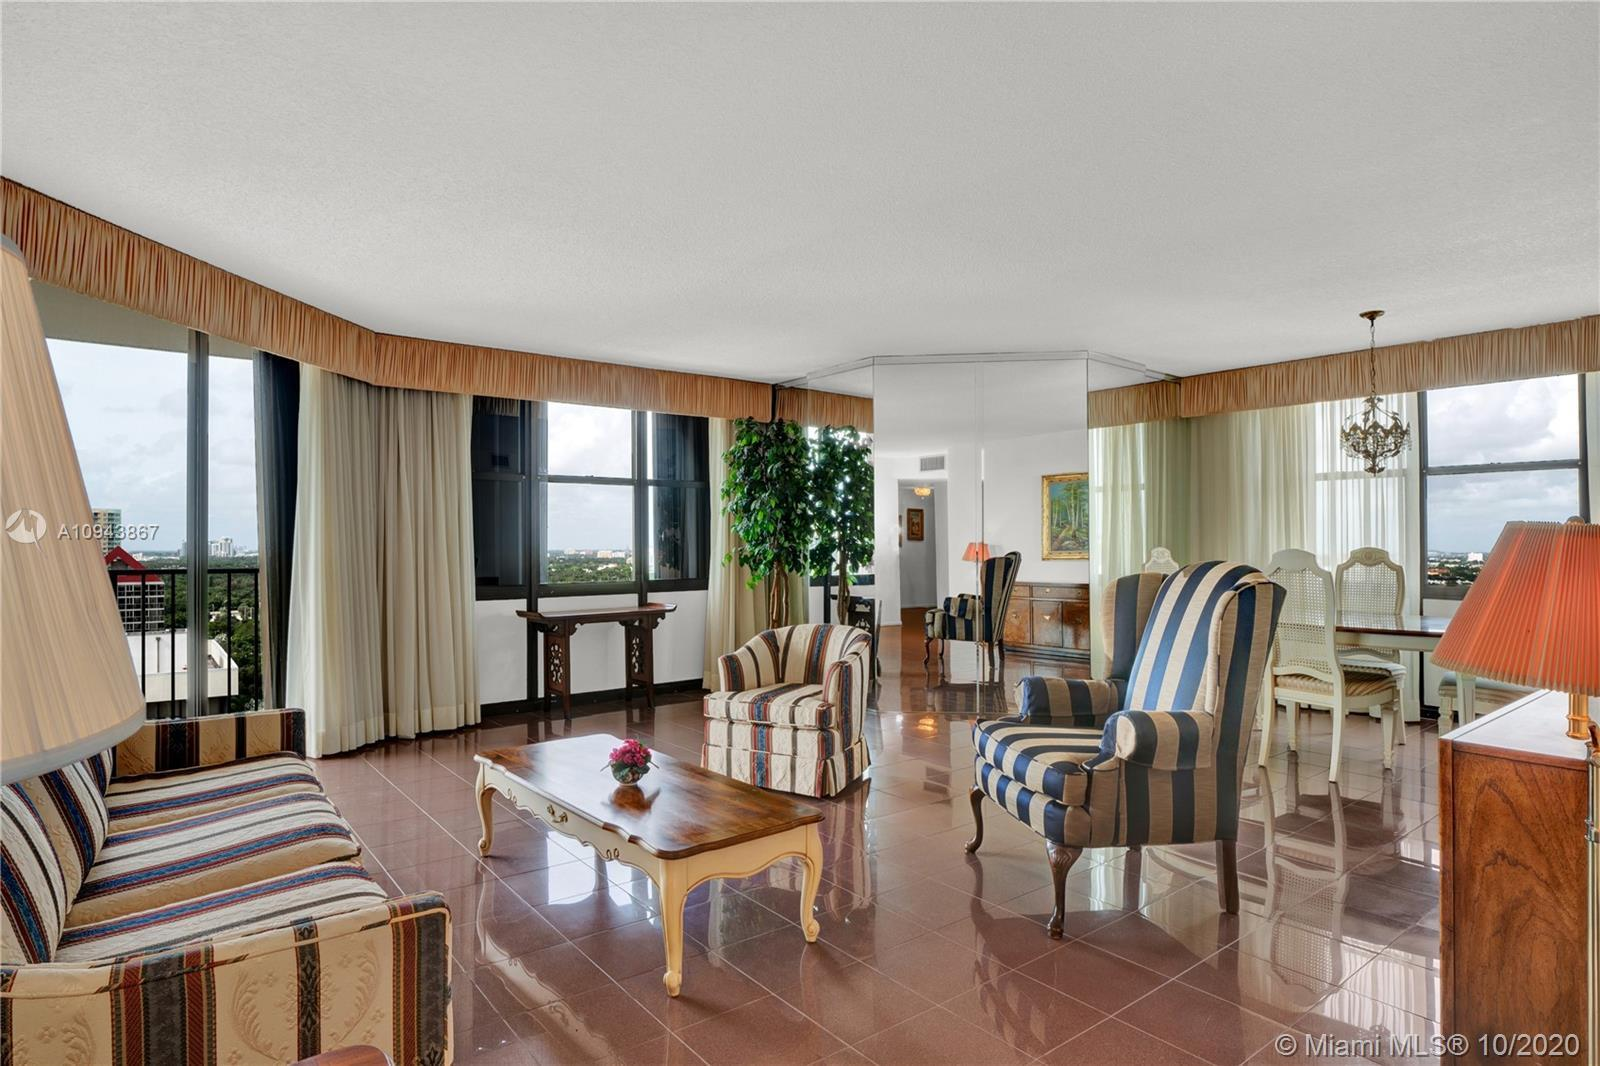 SPECTACULAR CORNER DIRECT OCEAN AND CITY VIEW SPACIOUS 2 BEDROOM, 2 BATH, OVER-SIZED BALCONY. MARBLE